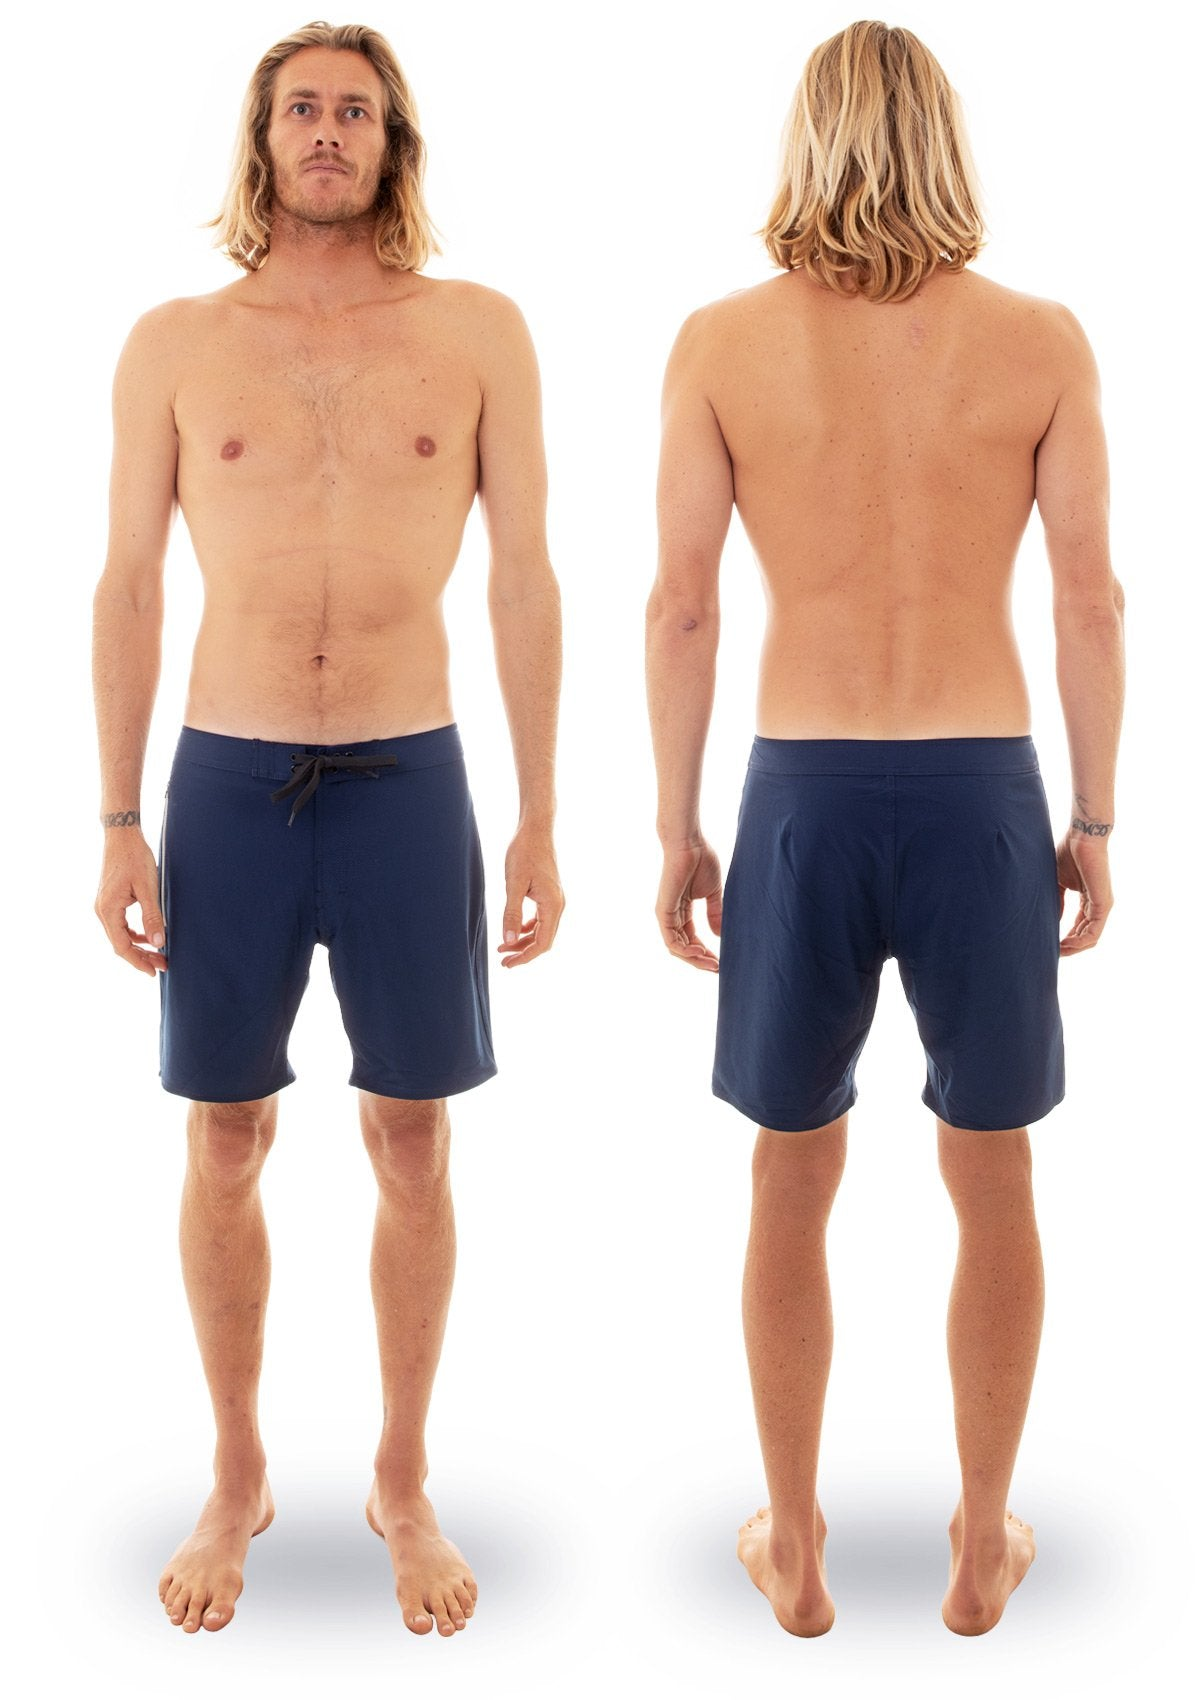 needessentials side mens surfing boardshorts non branded navy torren martyn